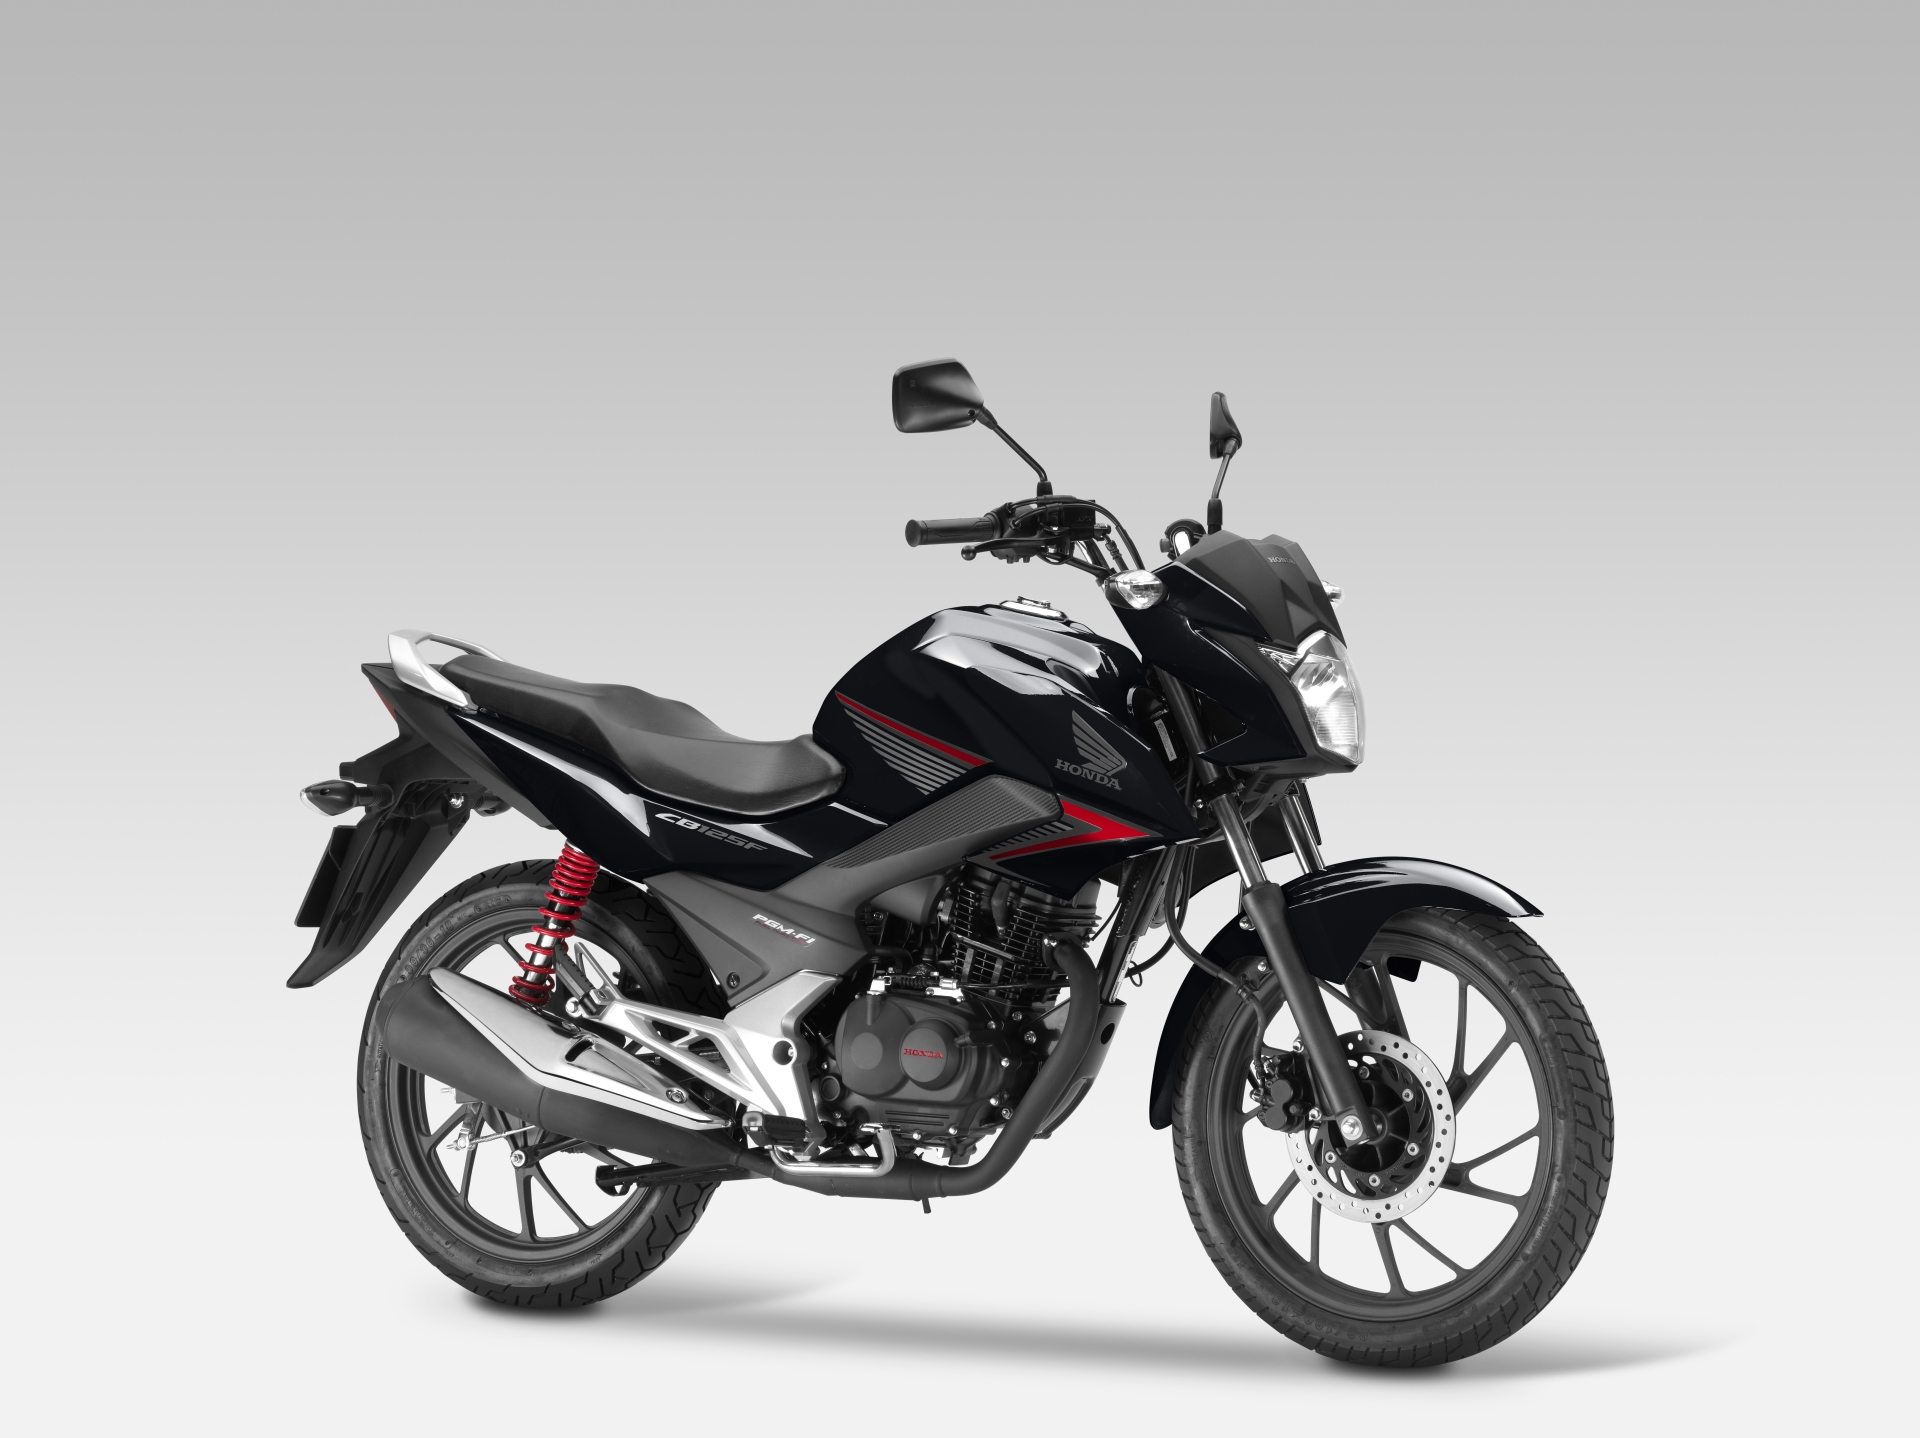 2015 honda cb125f to arrive in europe very soon